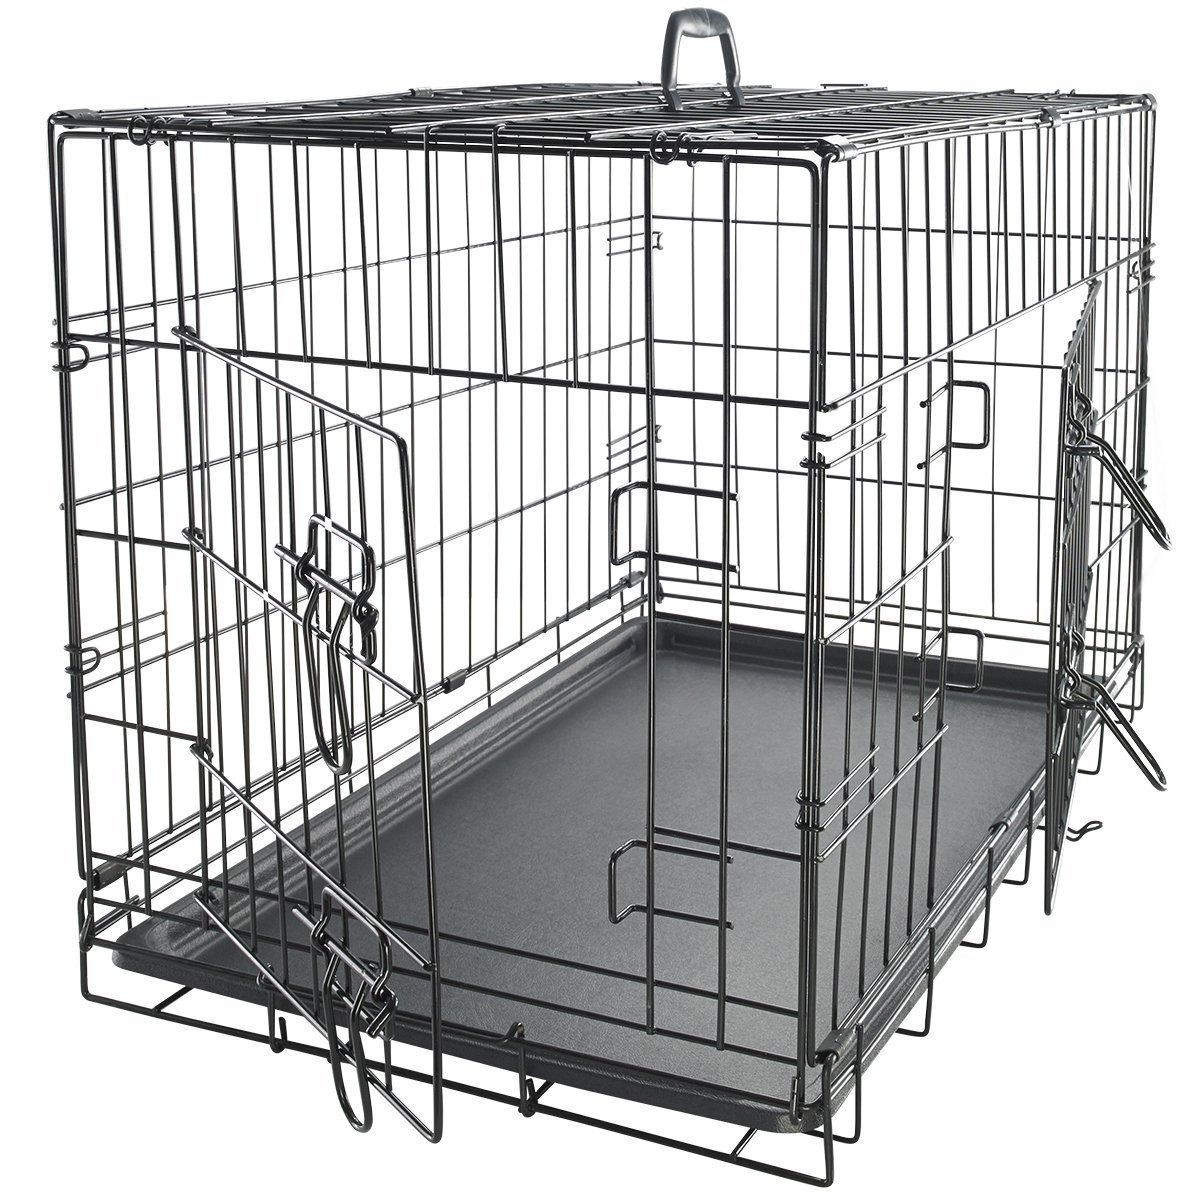 amazoncom  oxgord  xl dog crate doubledoors folding metal w  - amazoncom  oxgord  xl dog crate doubledoors folding metal w divider tray  x  x   newly designed model  pet supplies